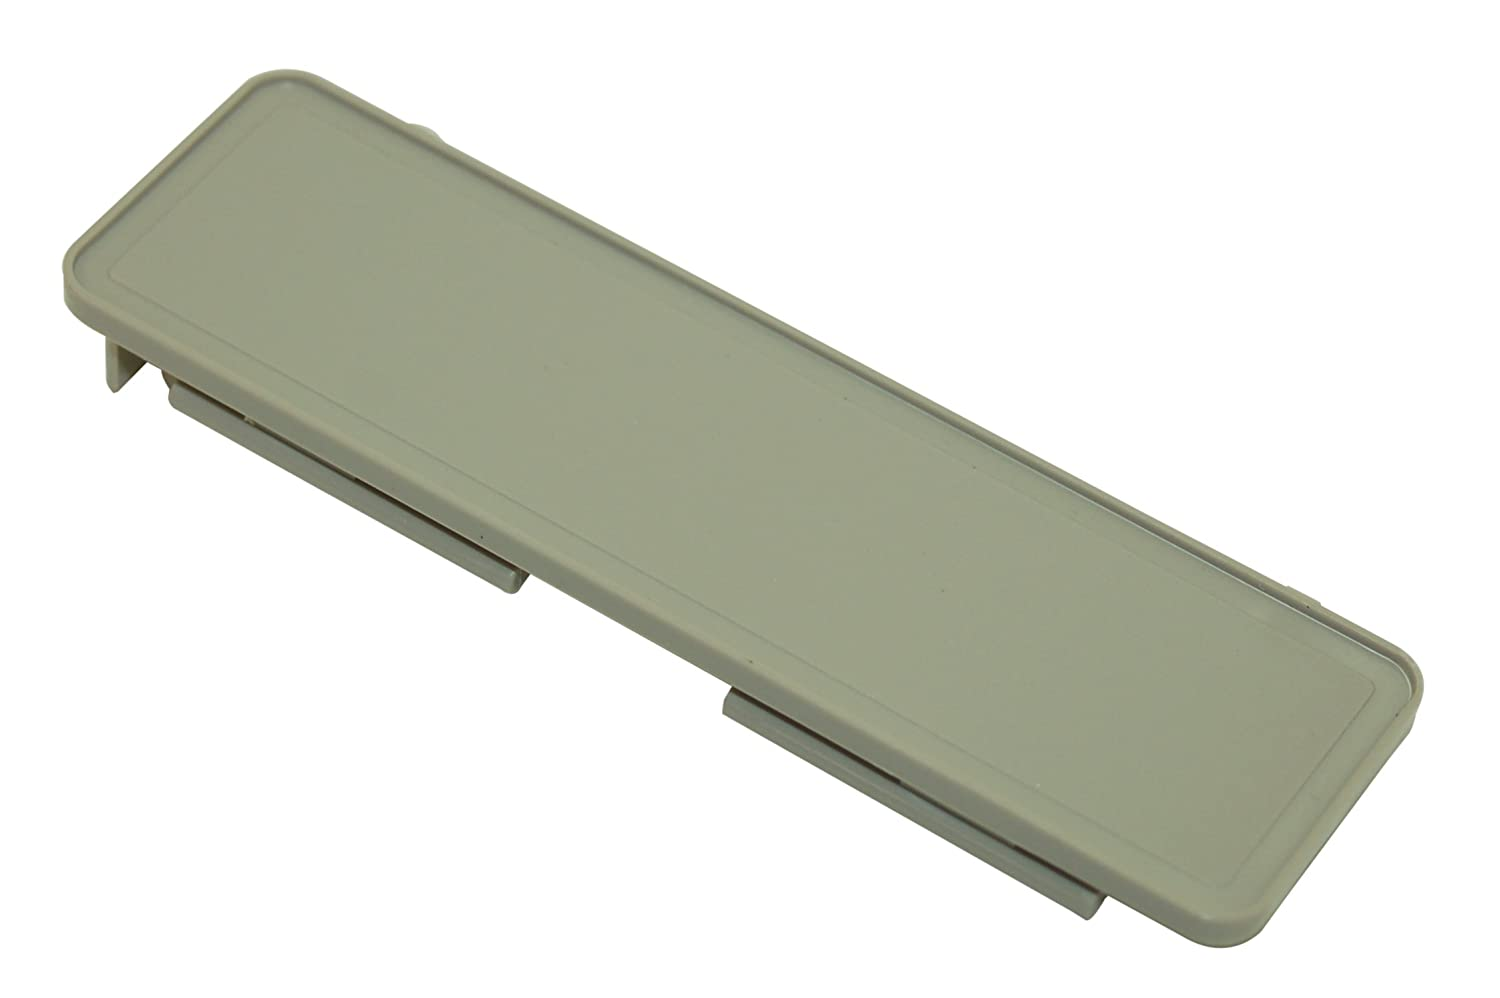 Smeg Dishwasher Grey Dishwasher Handle Cover. Genuine Part Number 762171543